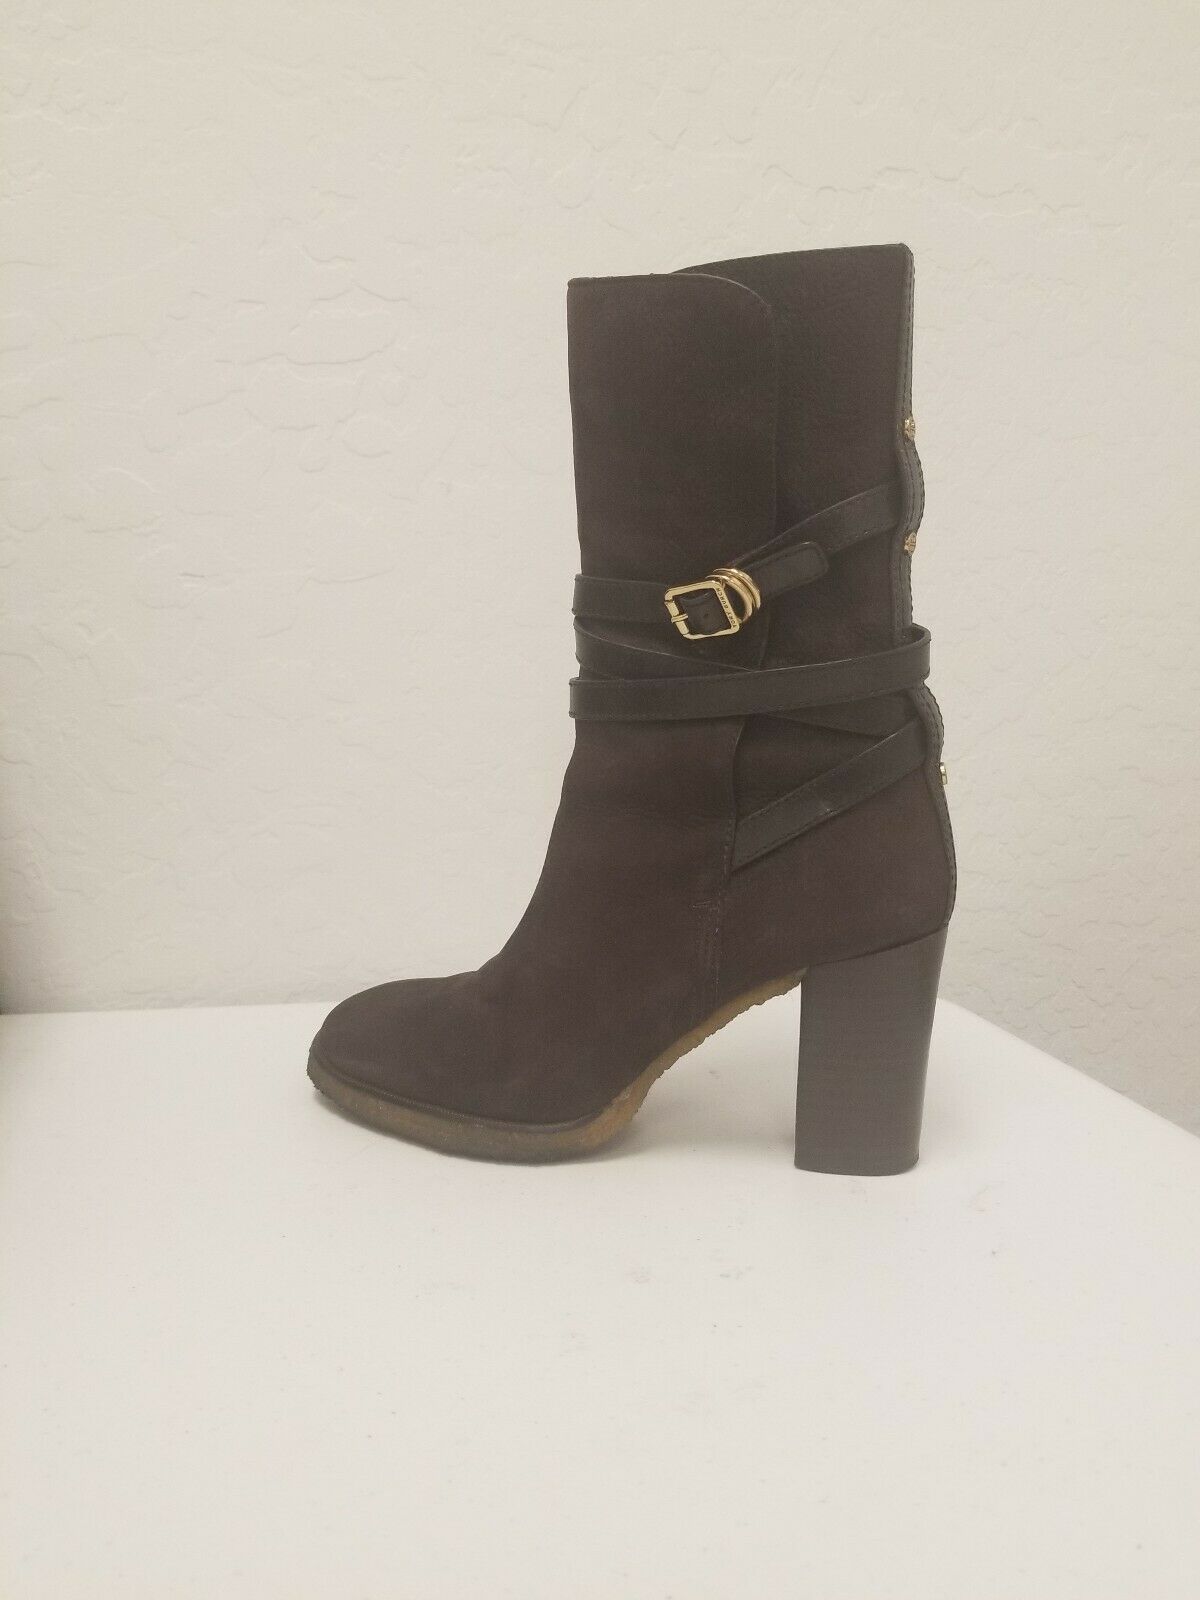 Tory Burch Jamie  Brown Suede Leather High Heel Mid Calf Boots Size 10